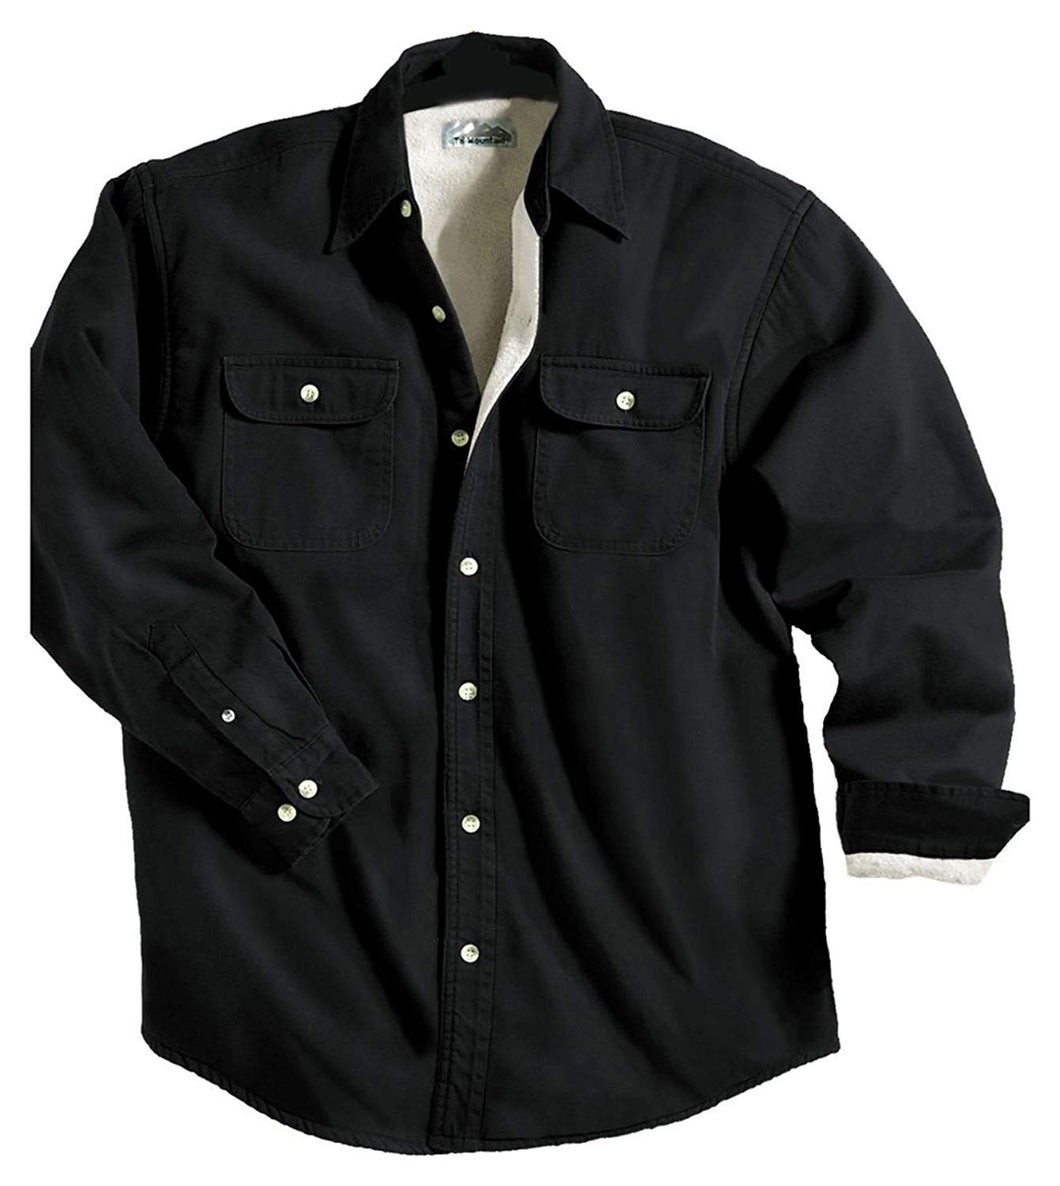 Men's Fleece-Lined Long Sleeve Denim Shirt, Black-Don Dapper Store